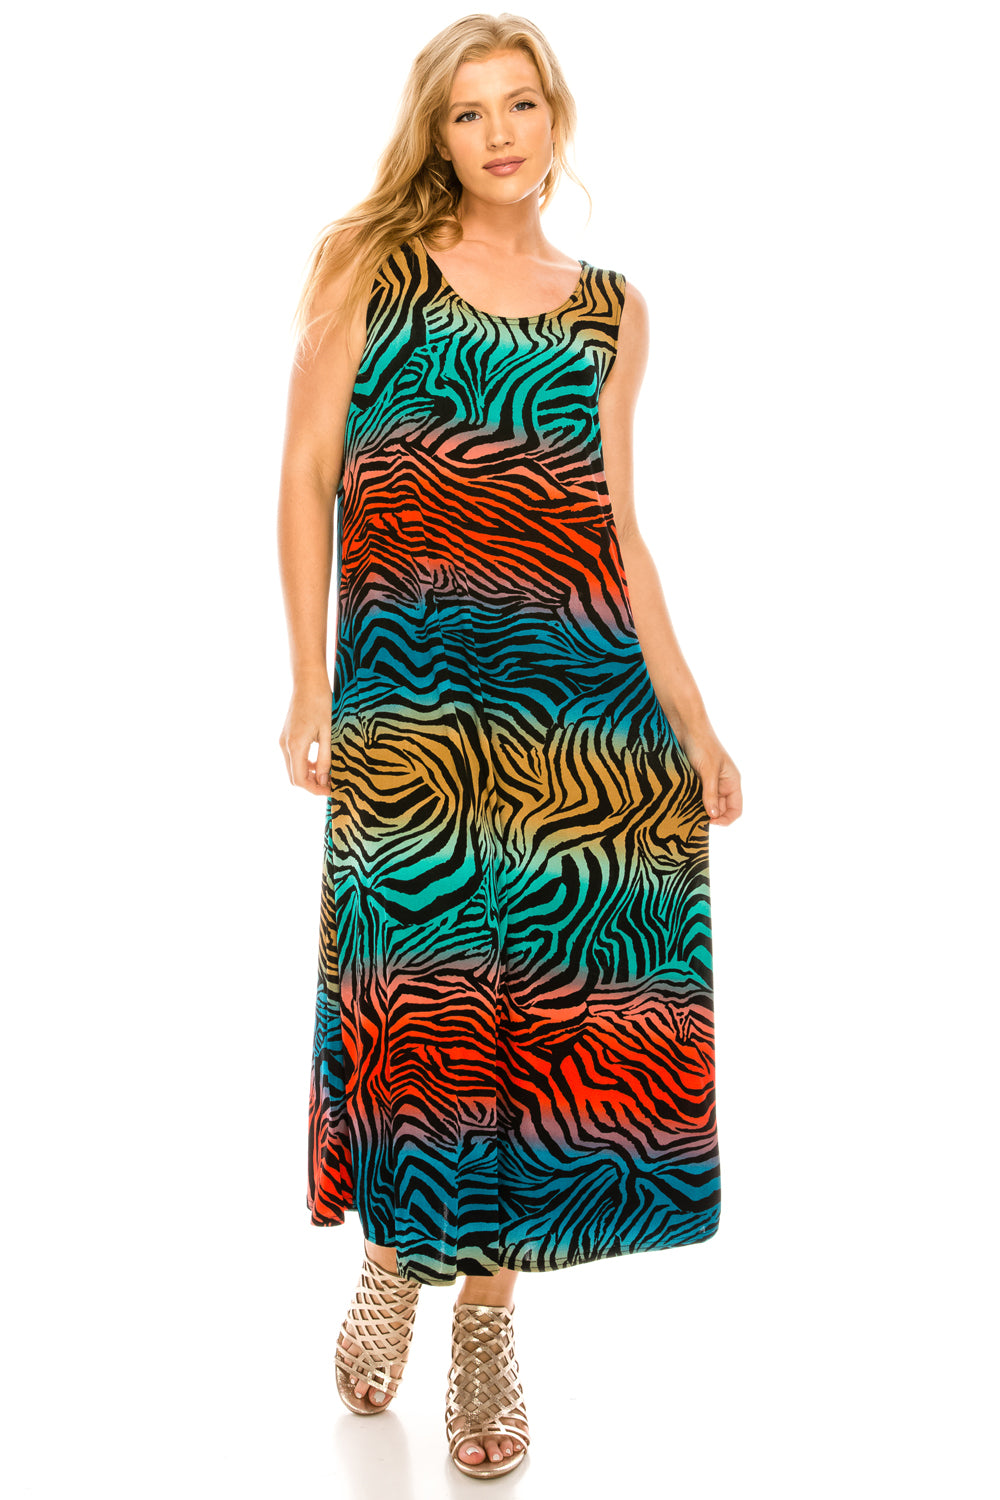 Jostar Women's Stretchy Tank Long Dress Sleeveless Plus Print, 700BN-TXP-W171 - Jostar Online